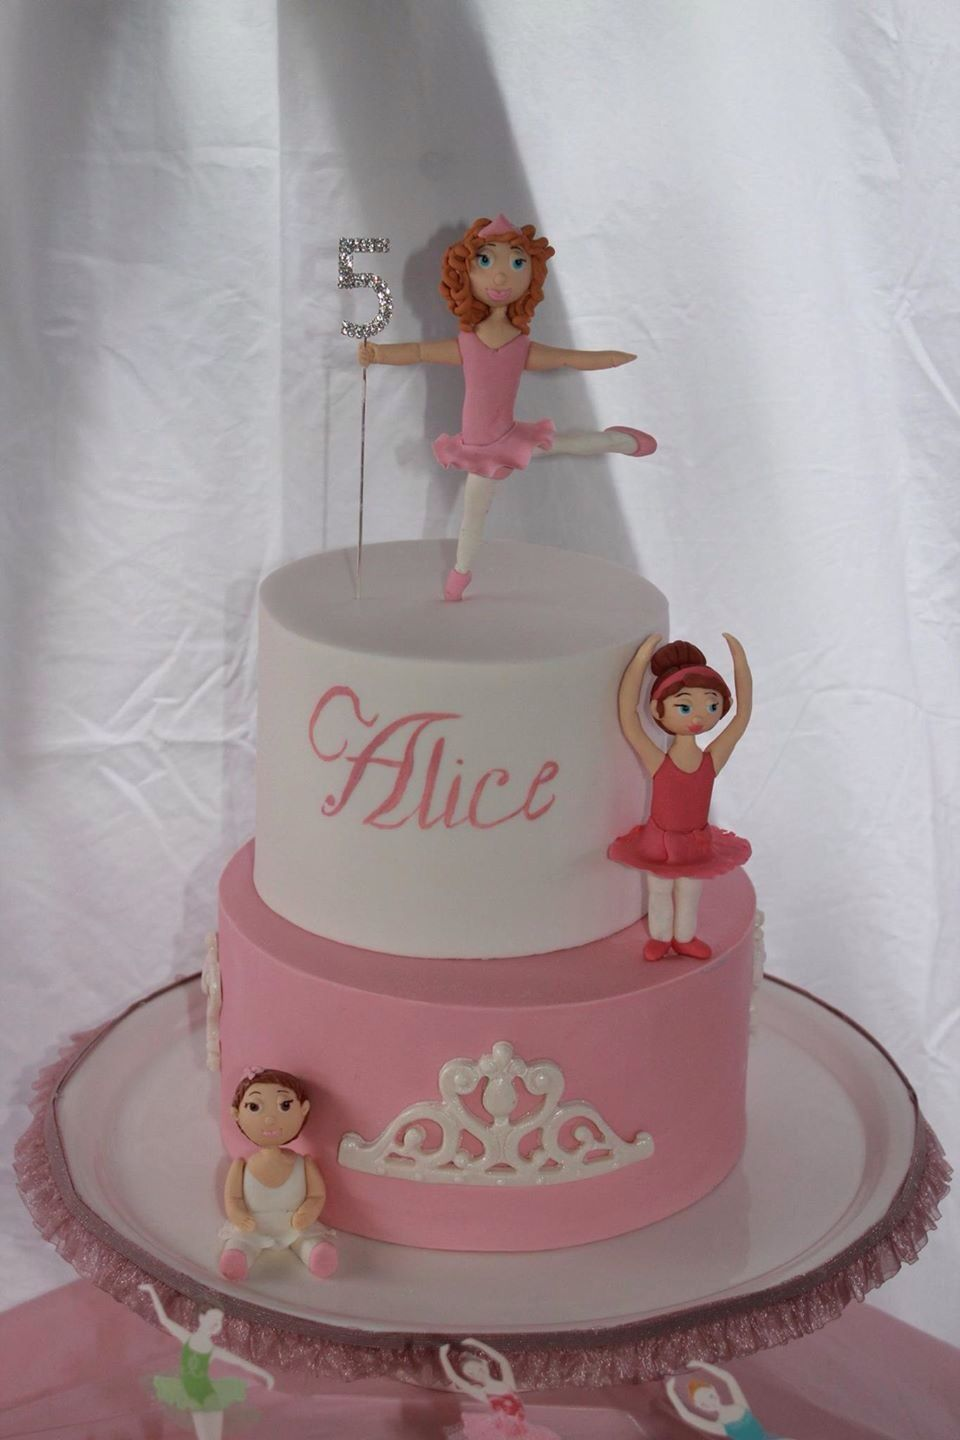 My little Miss Alice's 5th Ballerina Birthday Cake. The request was a cake with Alice and her two younger sisters in ballerina outfits.